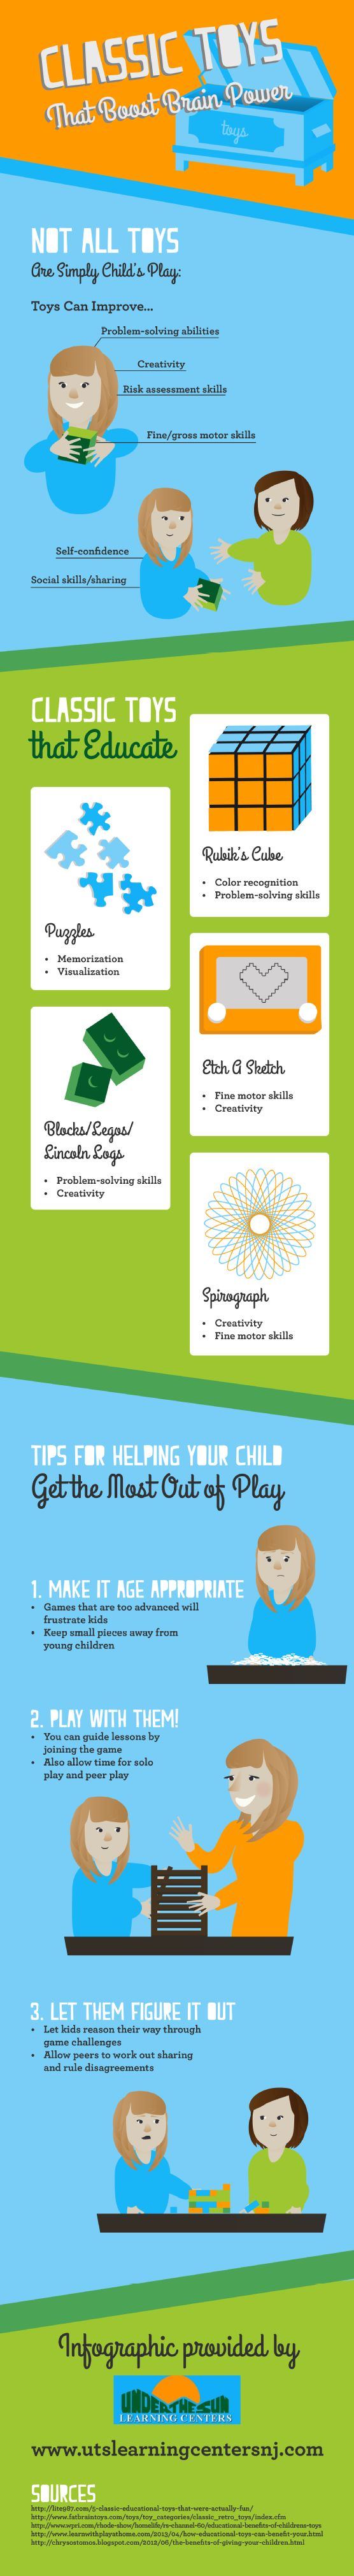 96 best images about Education Infographics on Pinterest ...